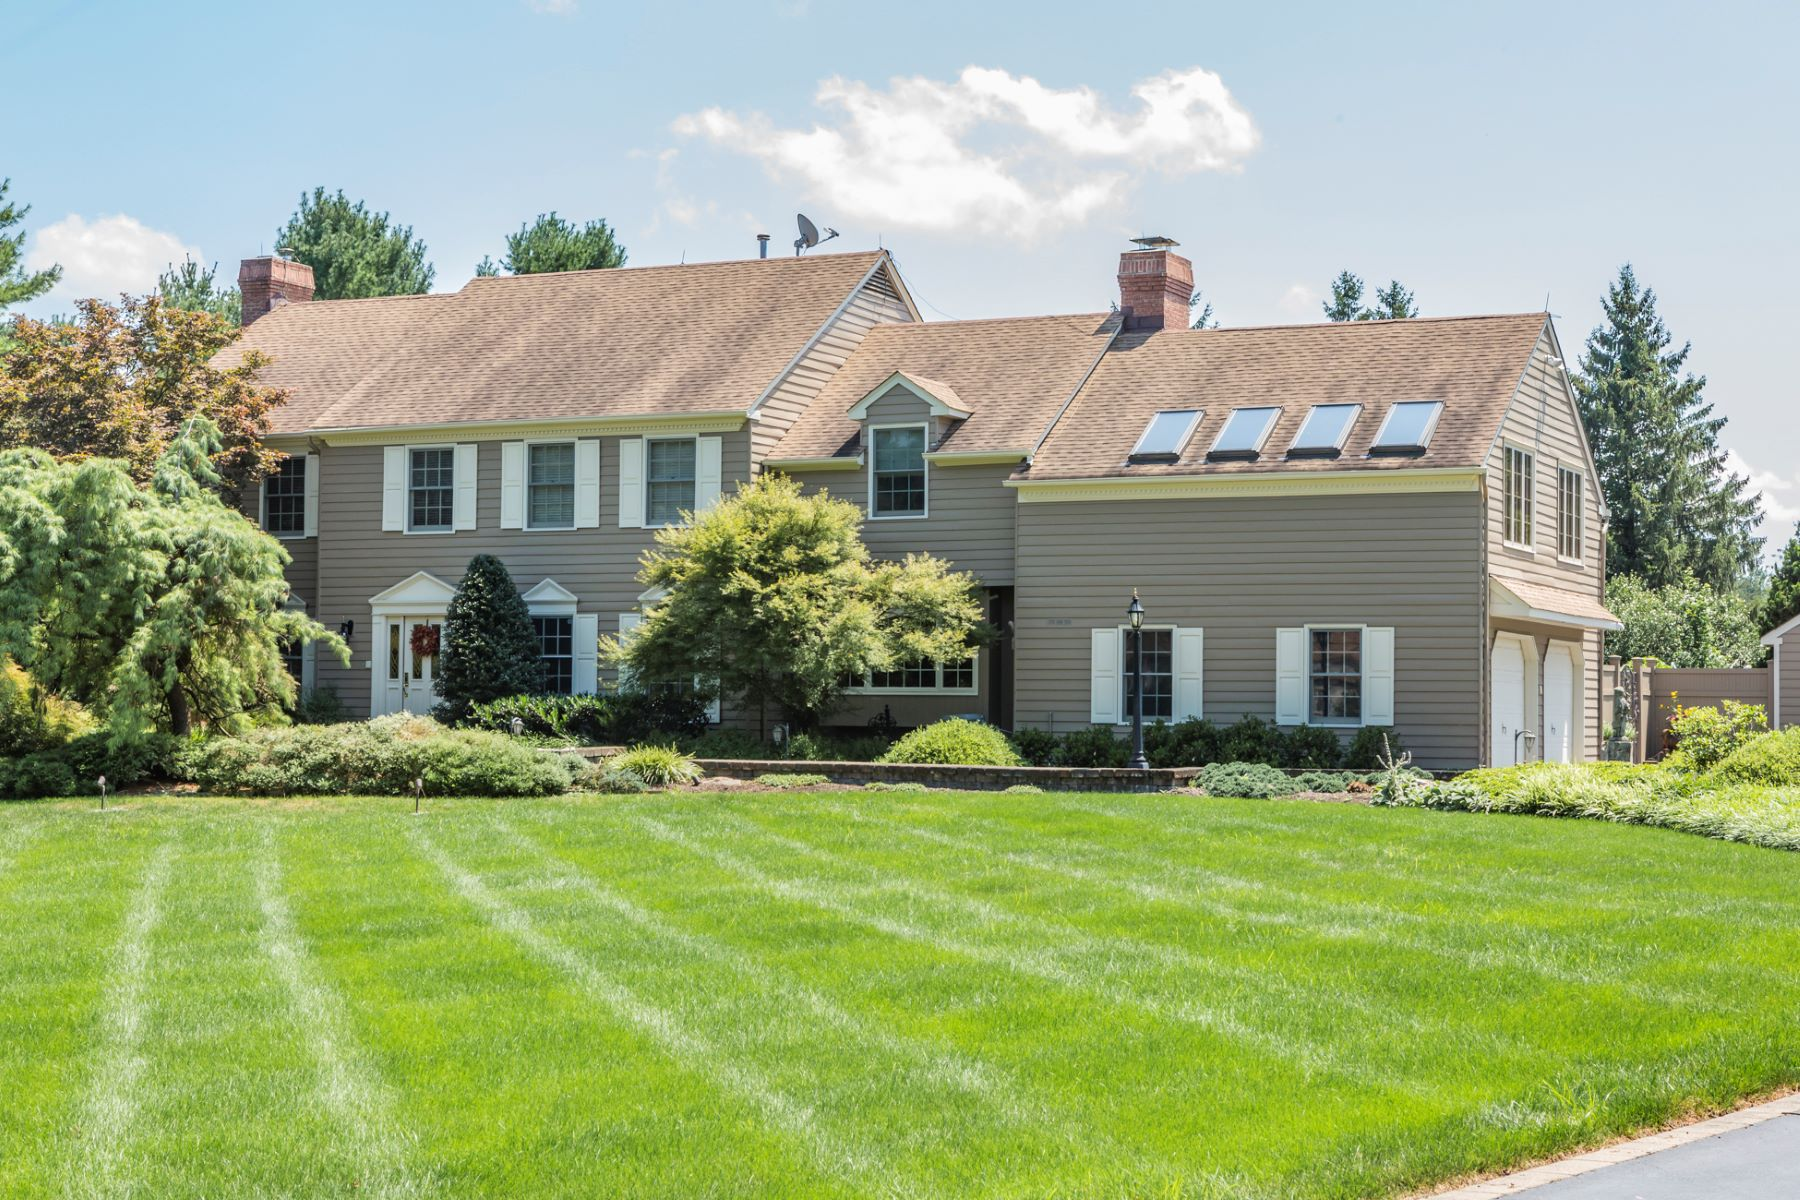 Single Family Homes のために 売買 アット Style And Sophistication On Resort Style Grounds - Hopewell Township 14 Meadow Lane, Pennington, ニュージャージー 08534 アメリカ